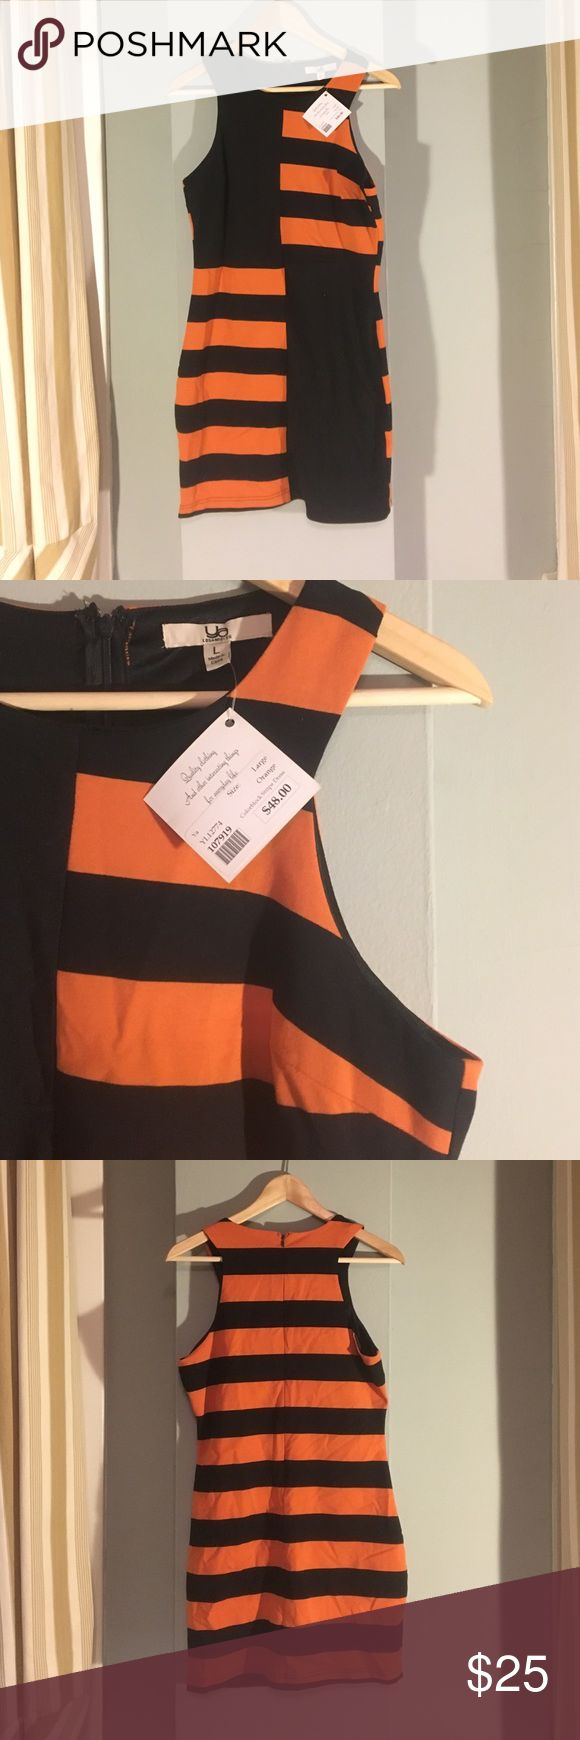 NWT Striped Body Contour Dress Never been worn in perfect condition. Orange and Black cotton striped dress Ya Los Angeles Dresses Midi